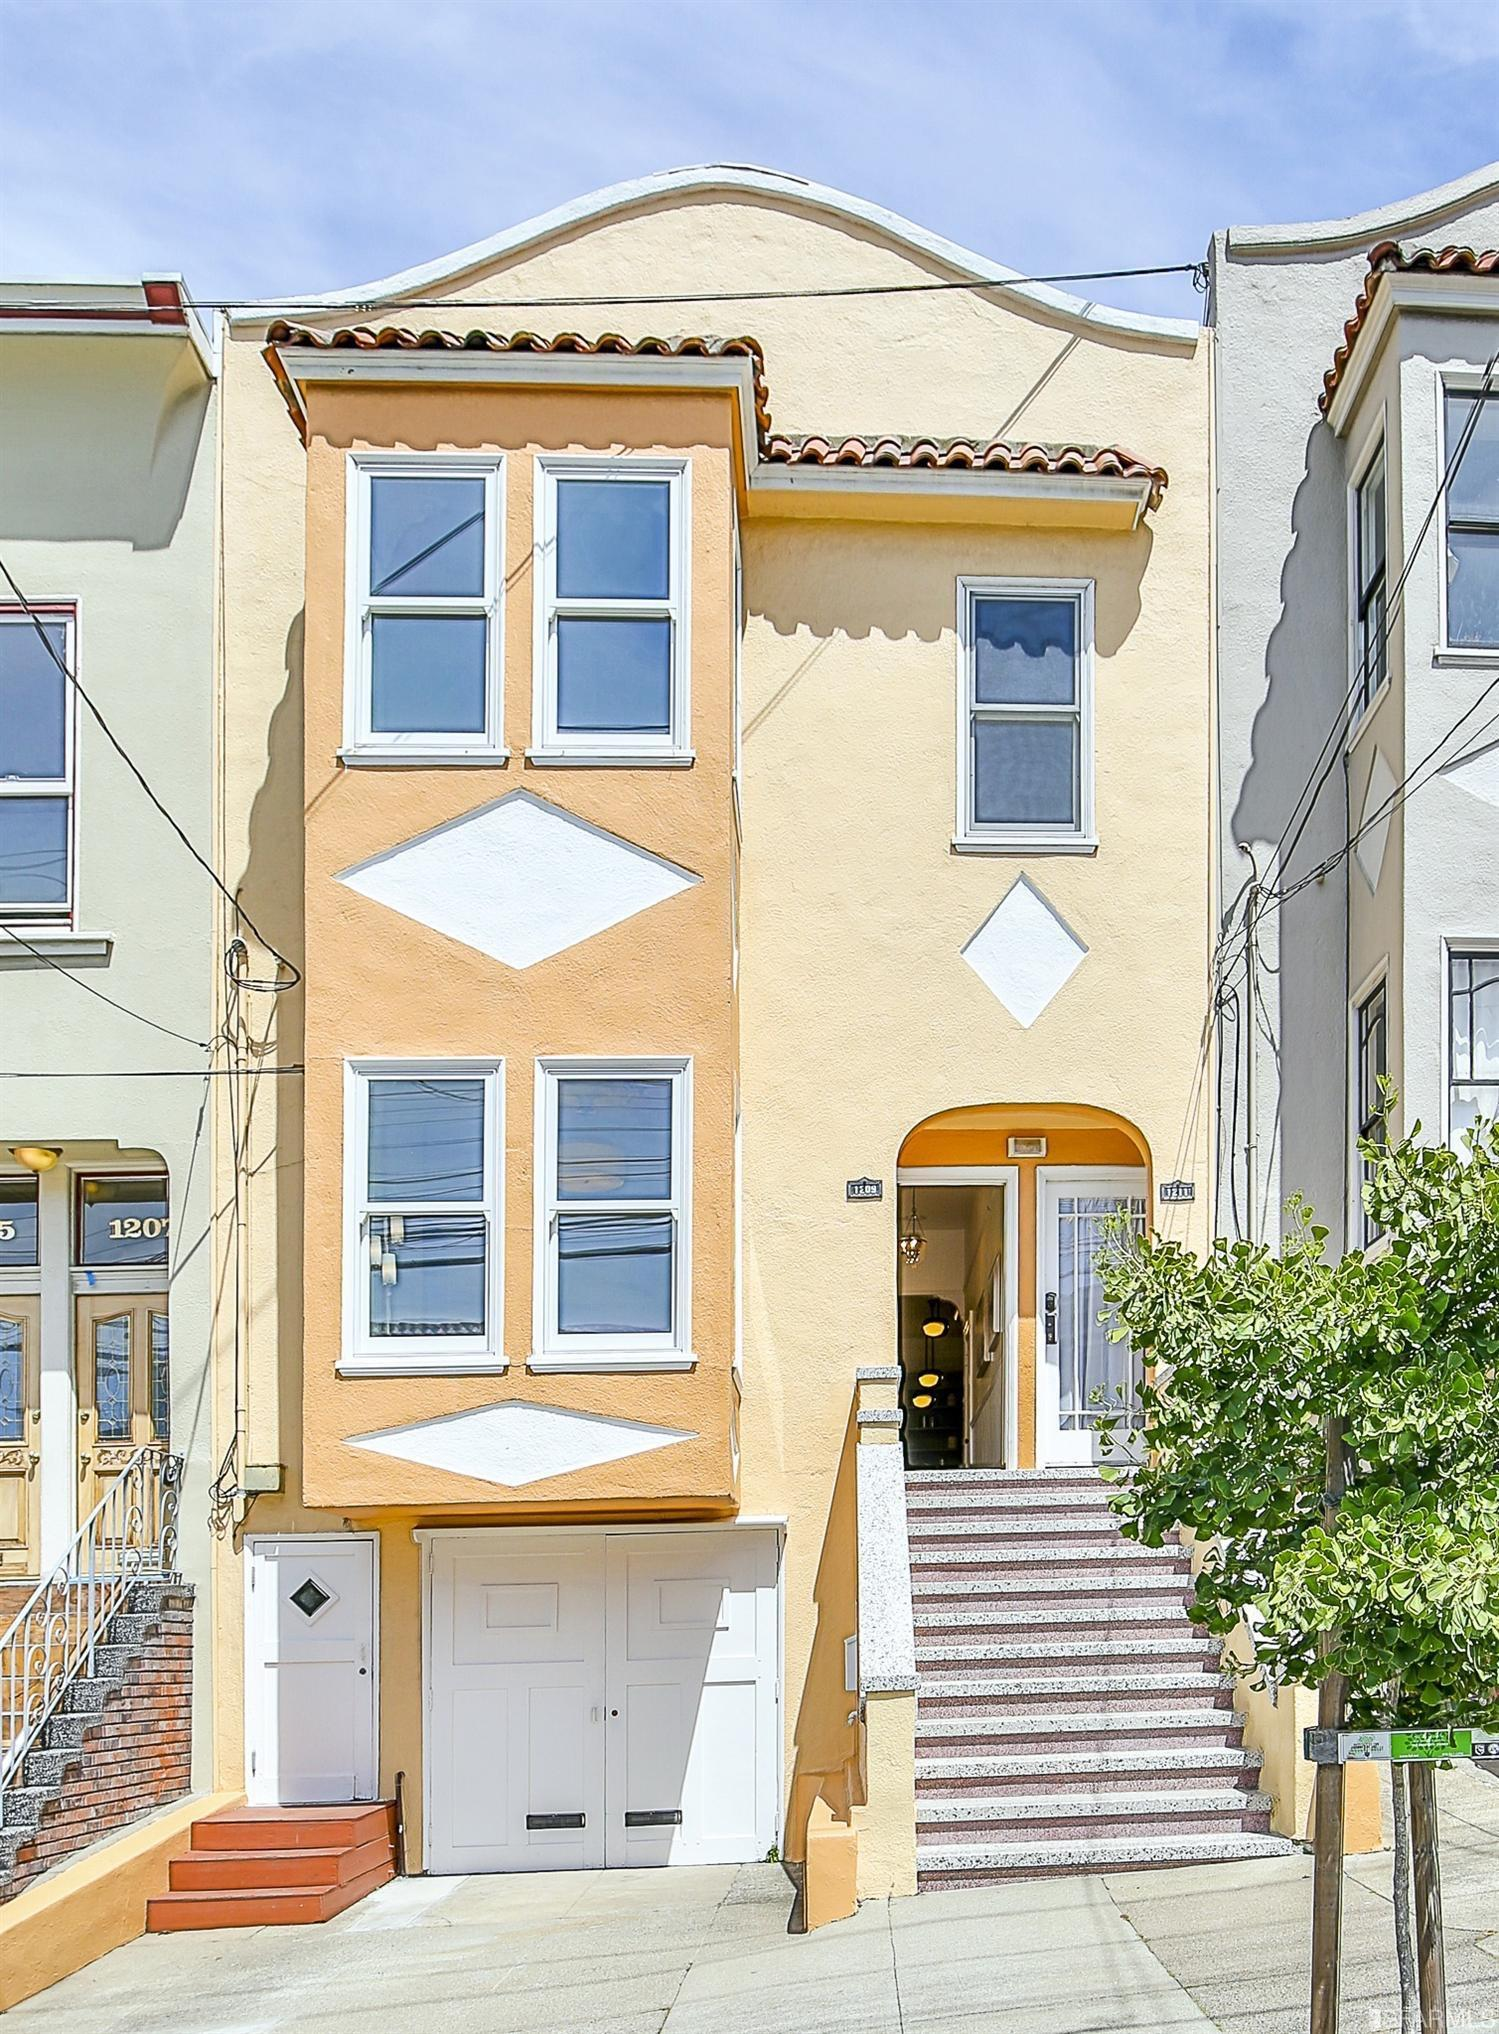 1209 Sanchez Street, San Francisco, listed at $1,095,000